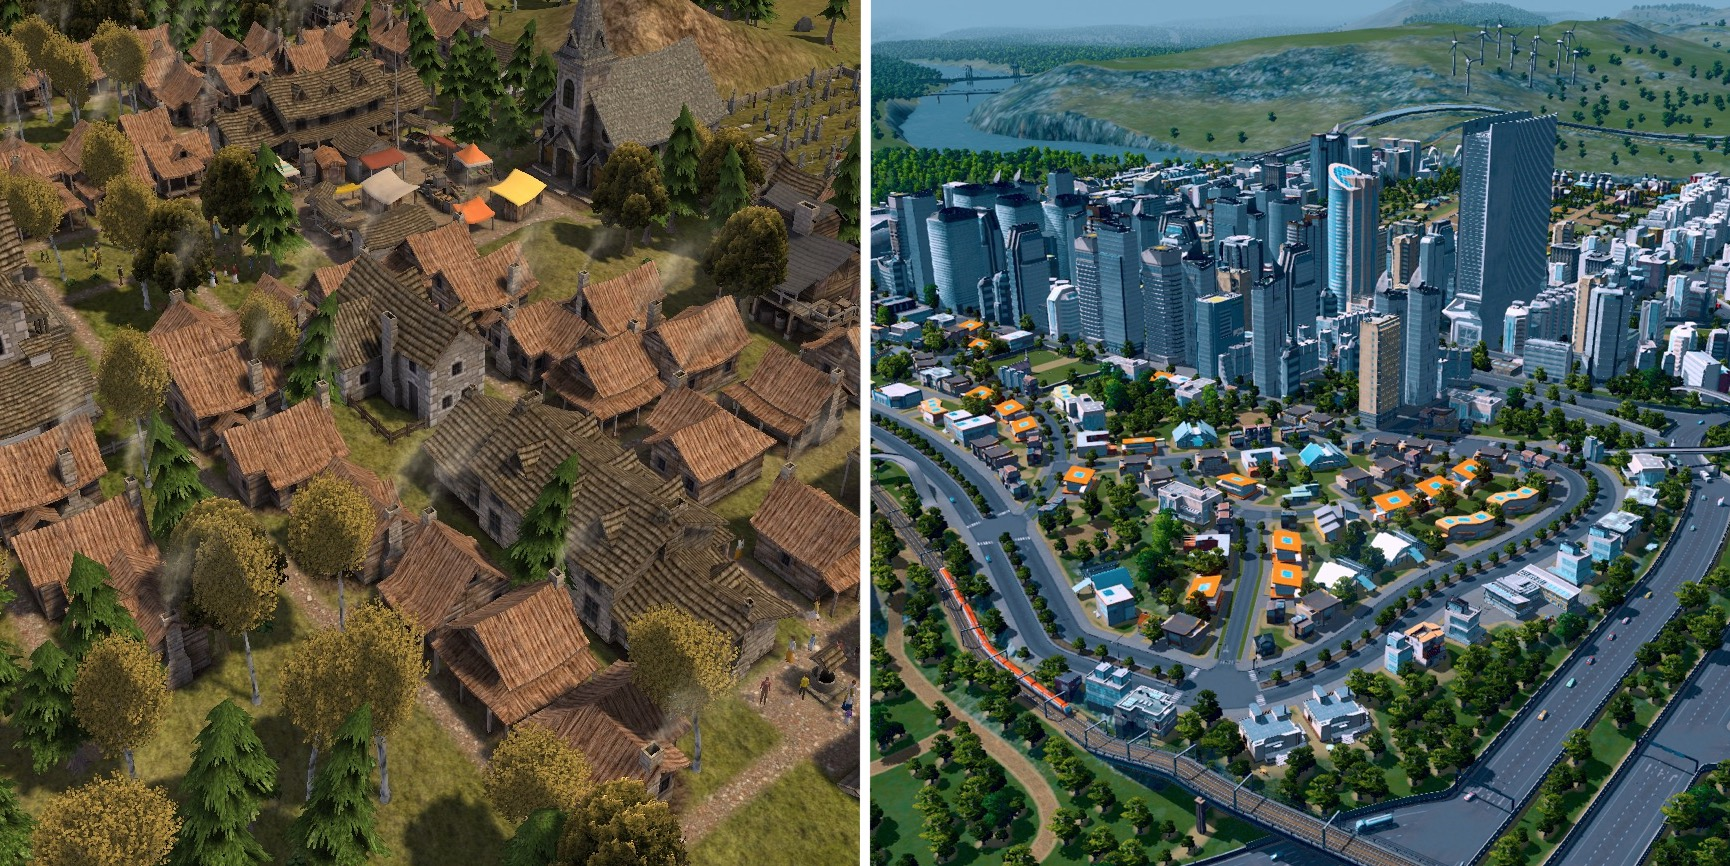 In city building games, you can see if a town is successful by seeing how large it is - but how do you know if the inhabitants are happy?